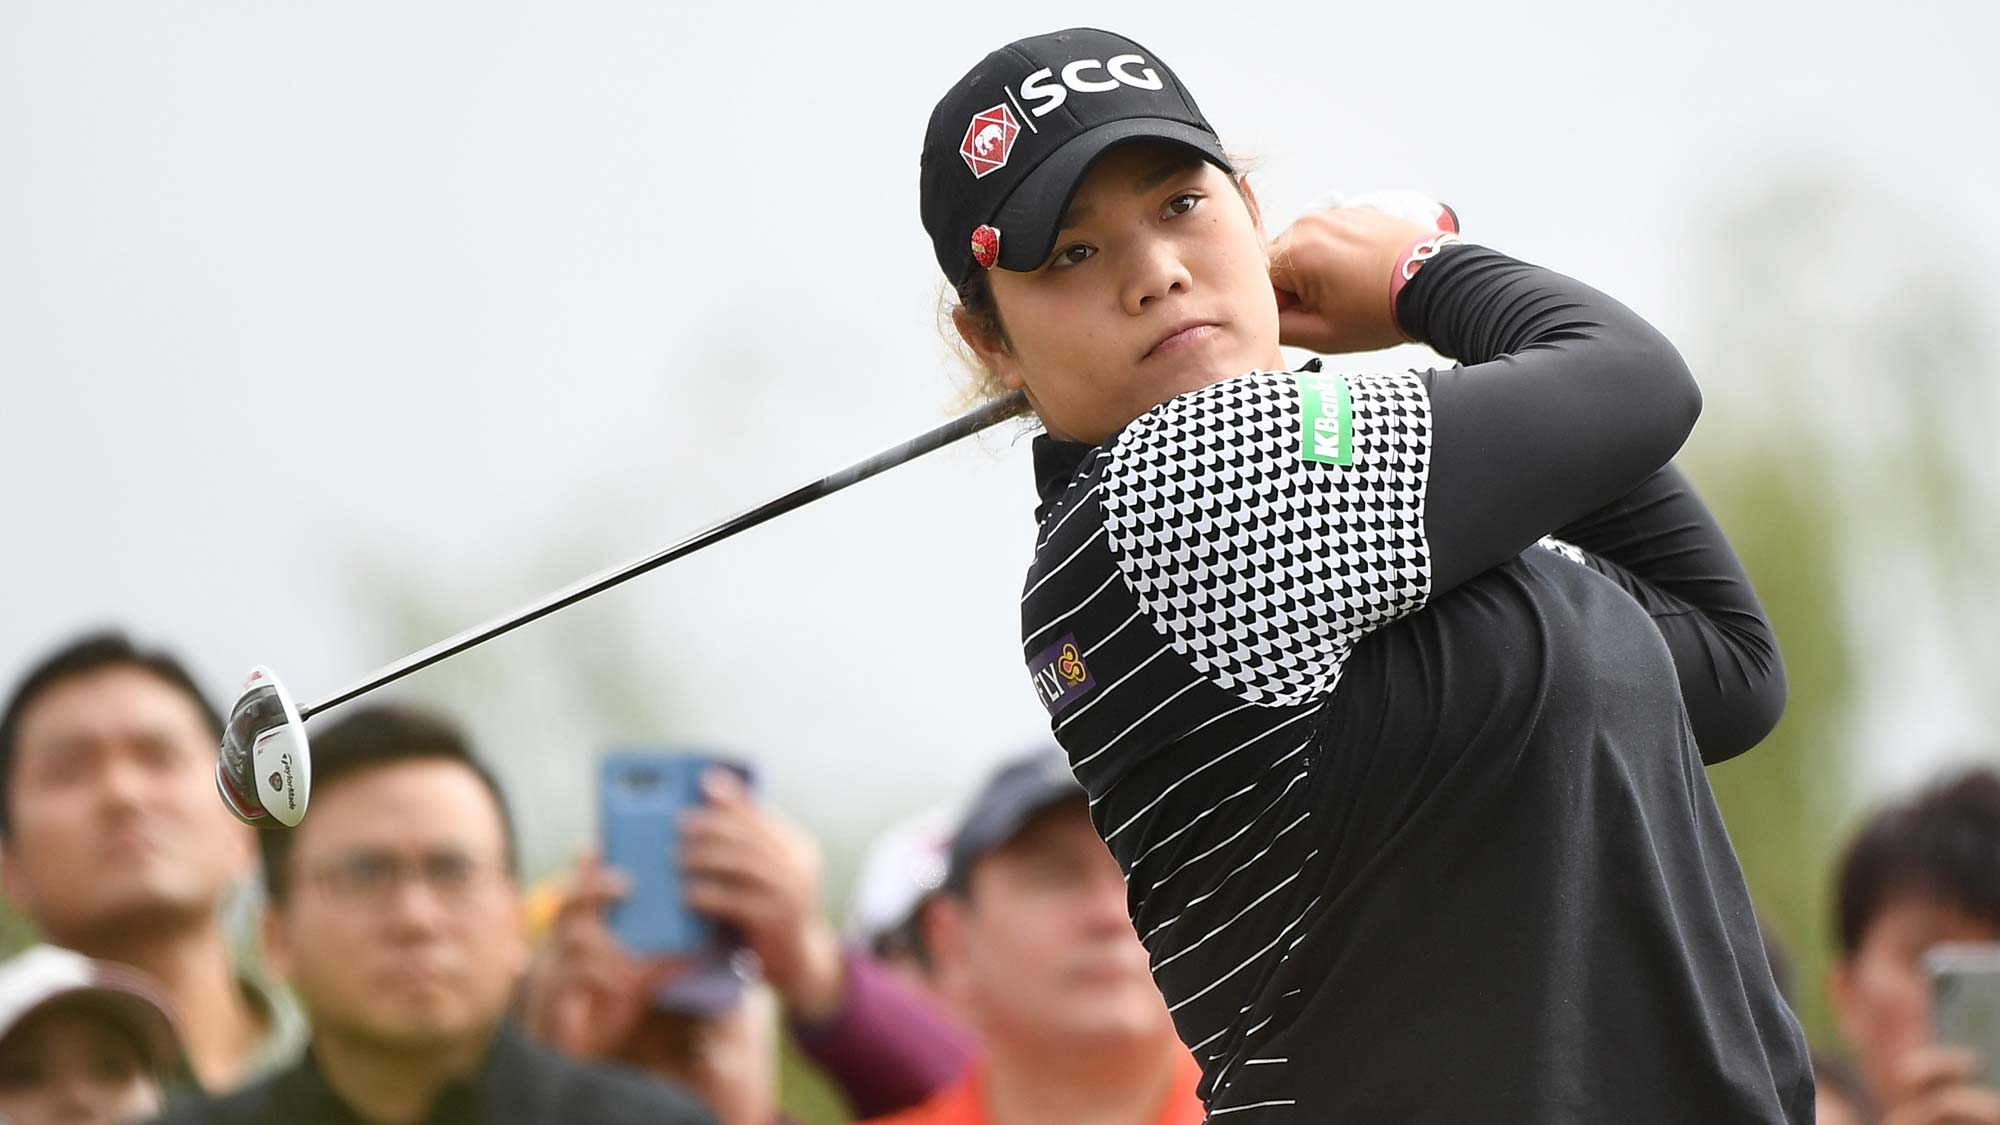 Ariya Jutanugarn of Thailand plays a shot the final round of the Buick LPGA Shanghai